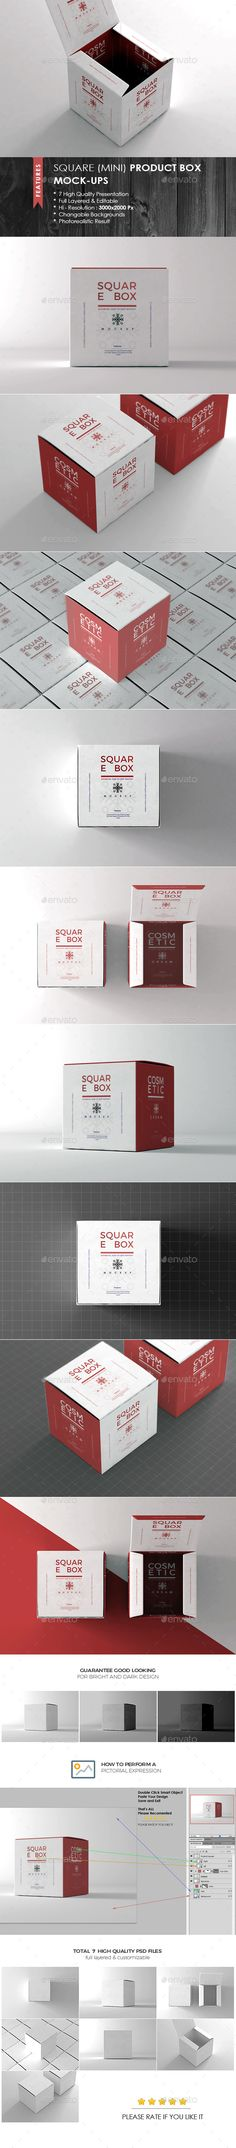 Square Box Mockup — Photoshop PSD #box #pack • Available here → https://graphicriver.net/item/square-box-mockup/19318009?ref=pxcr